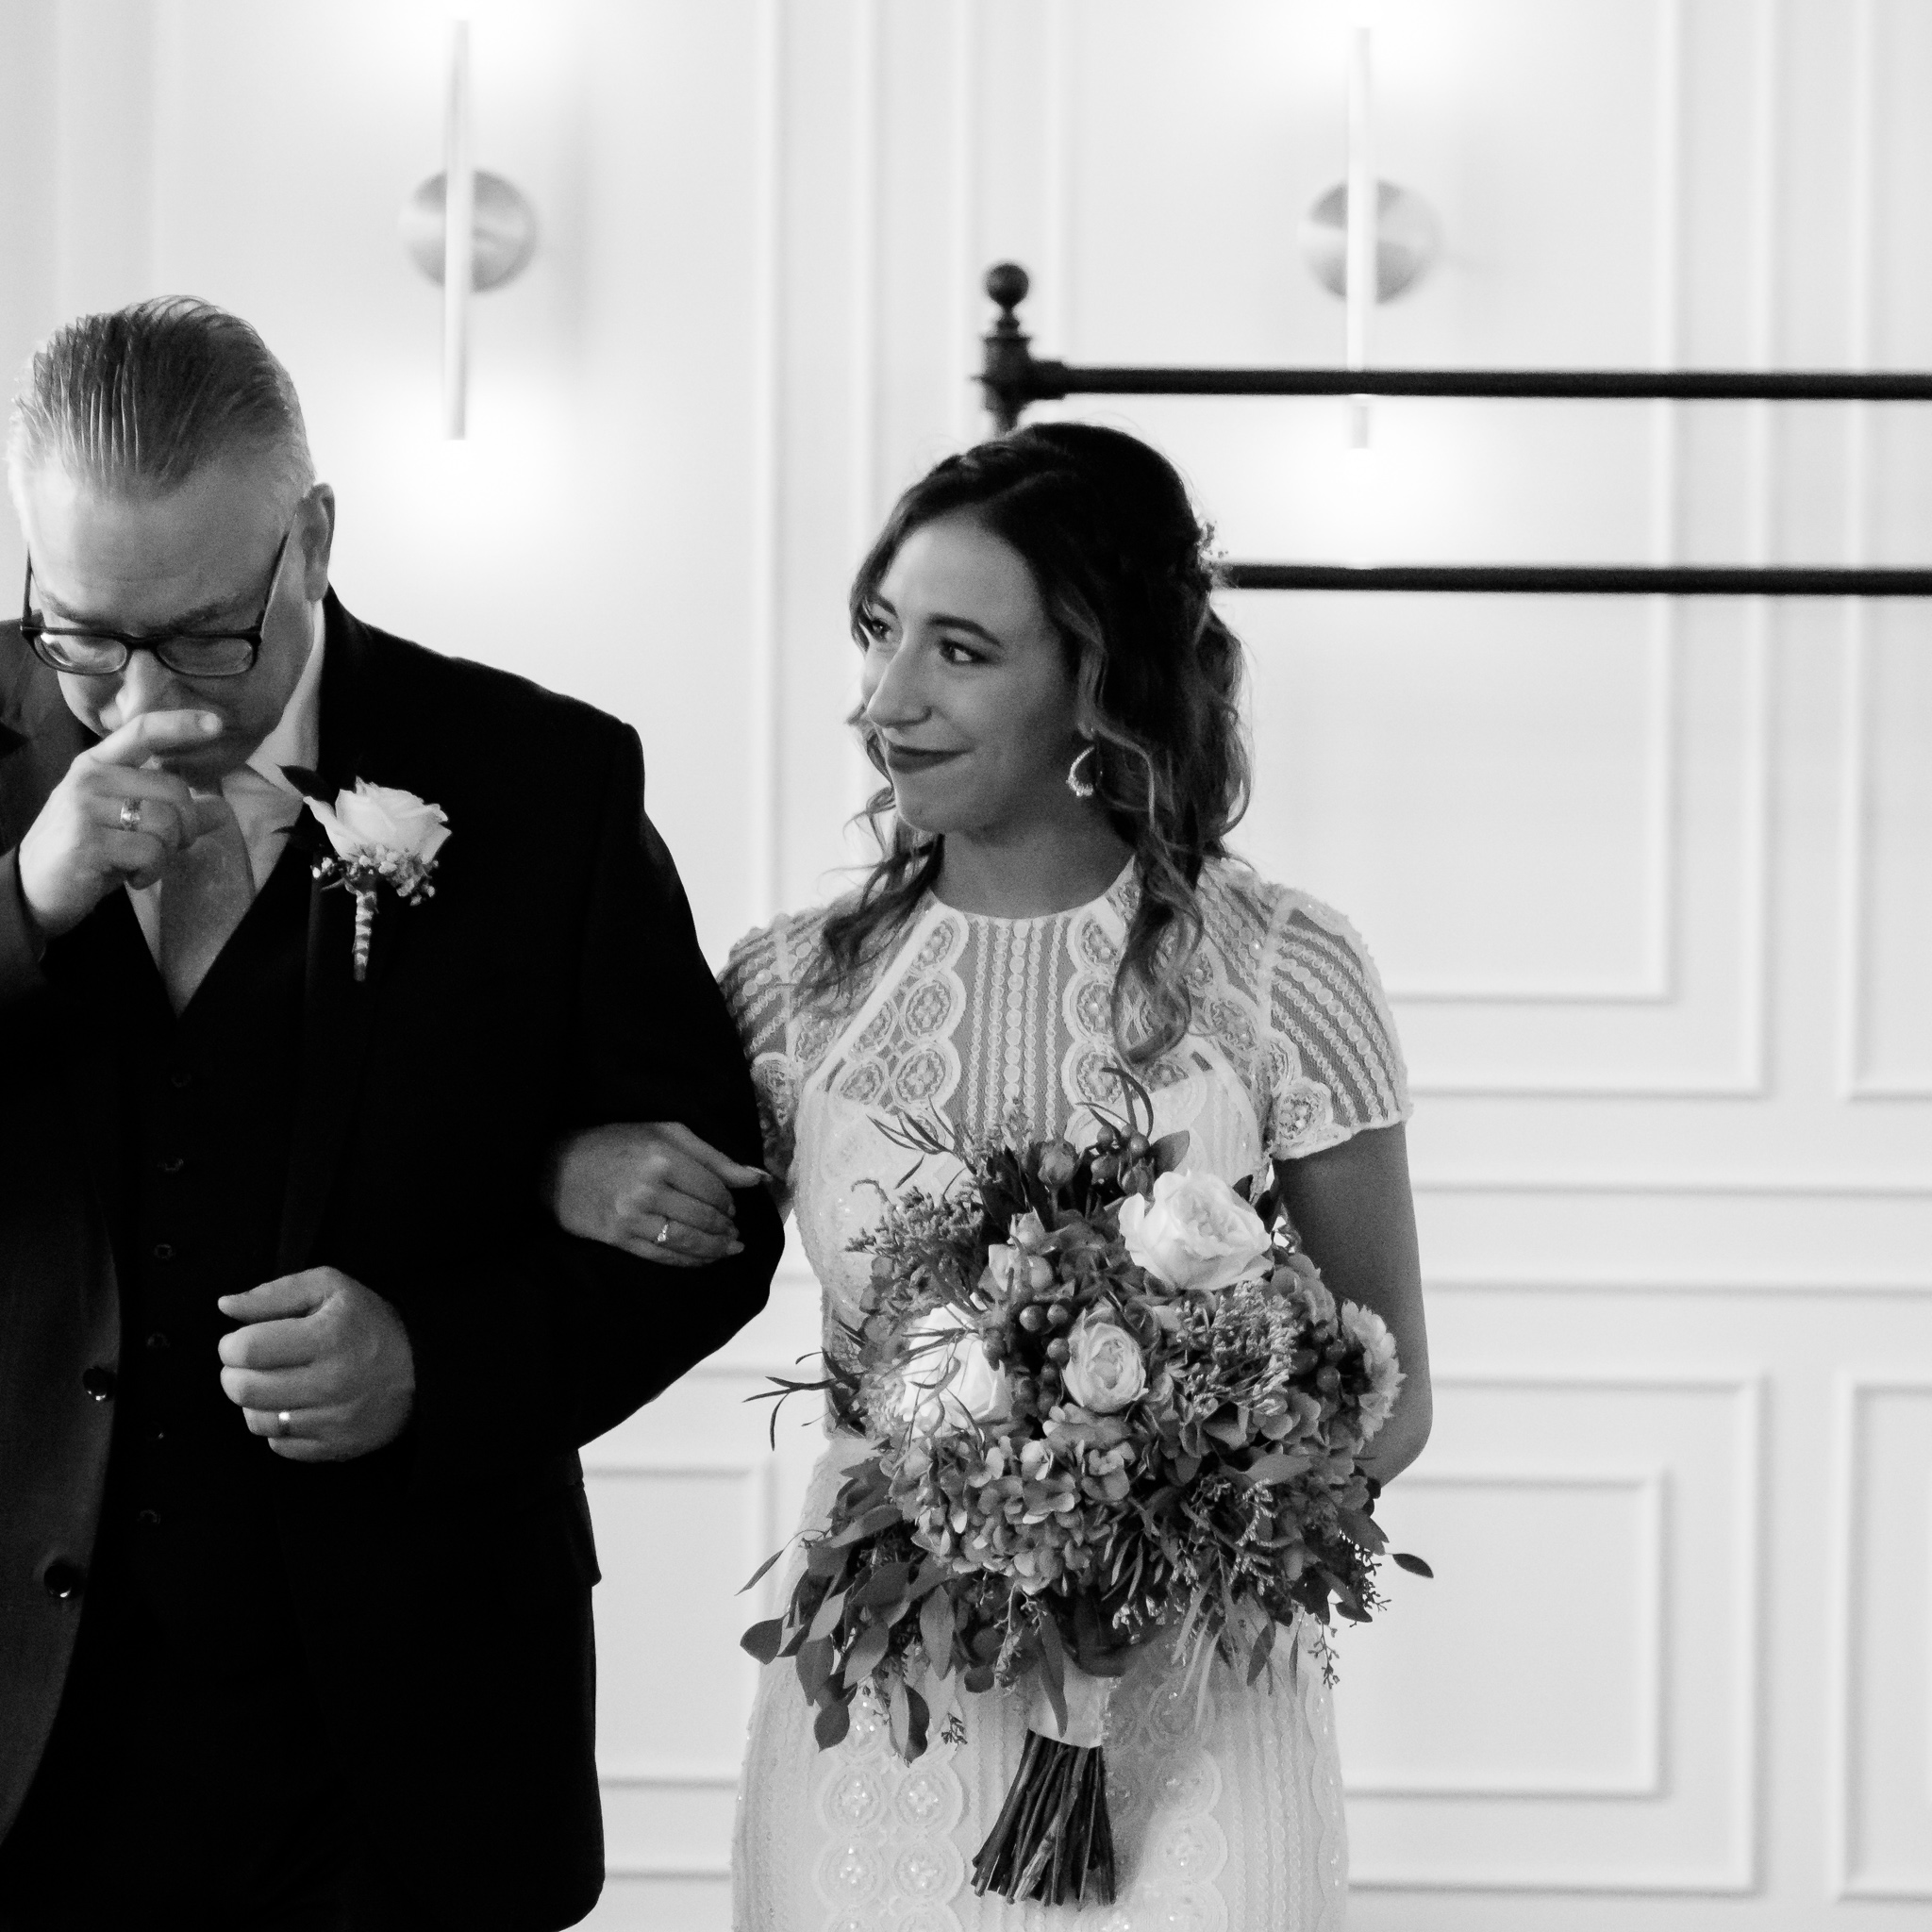 20180915wedding-kyler-michaela-575.jpg